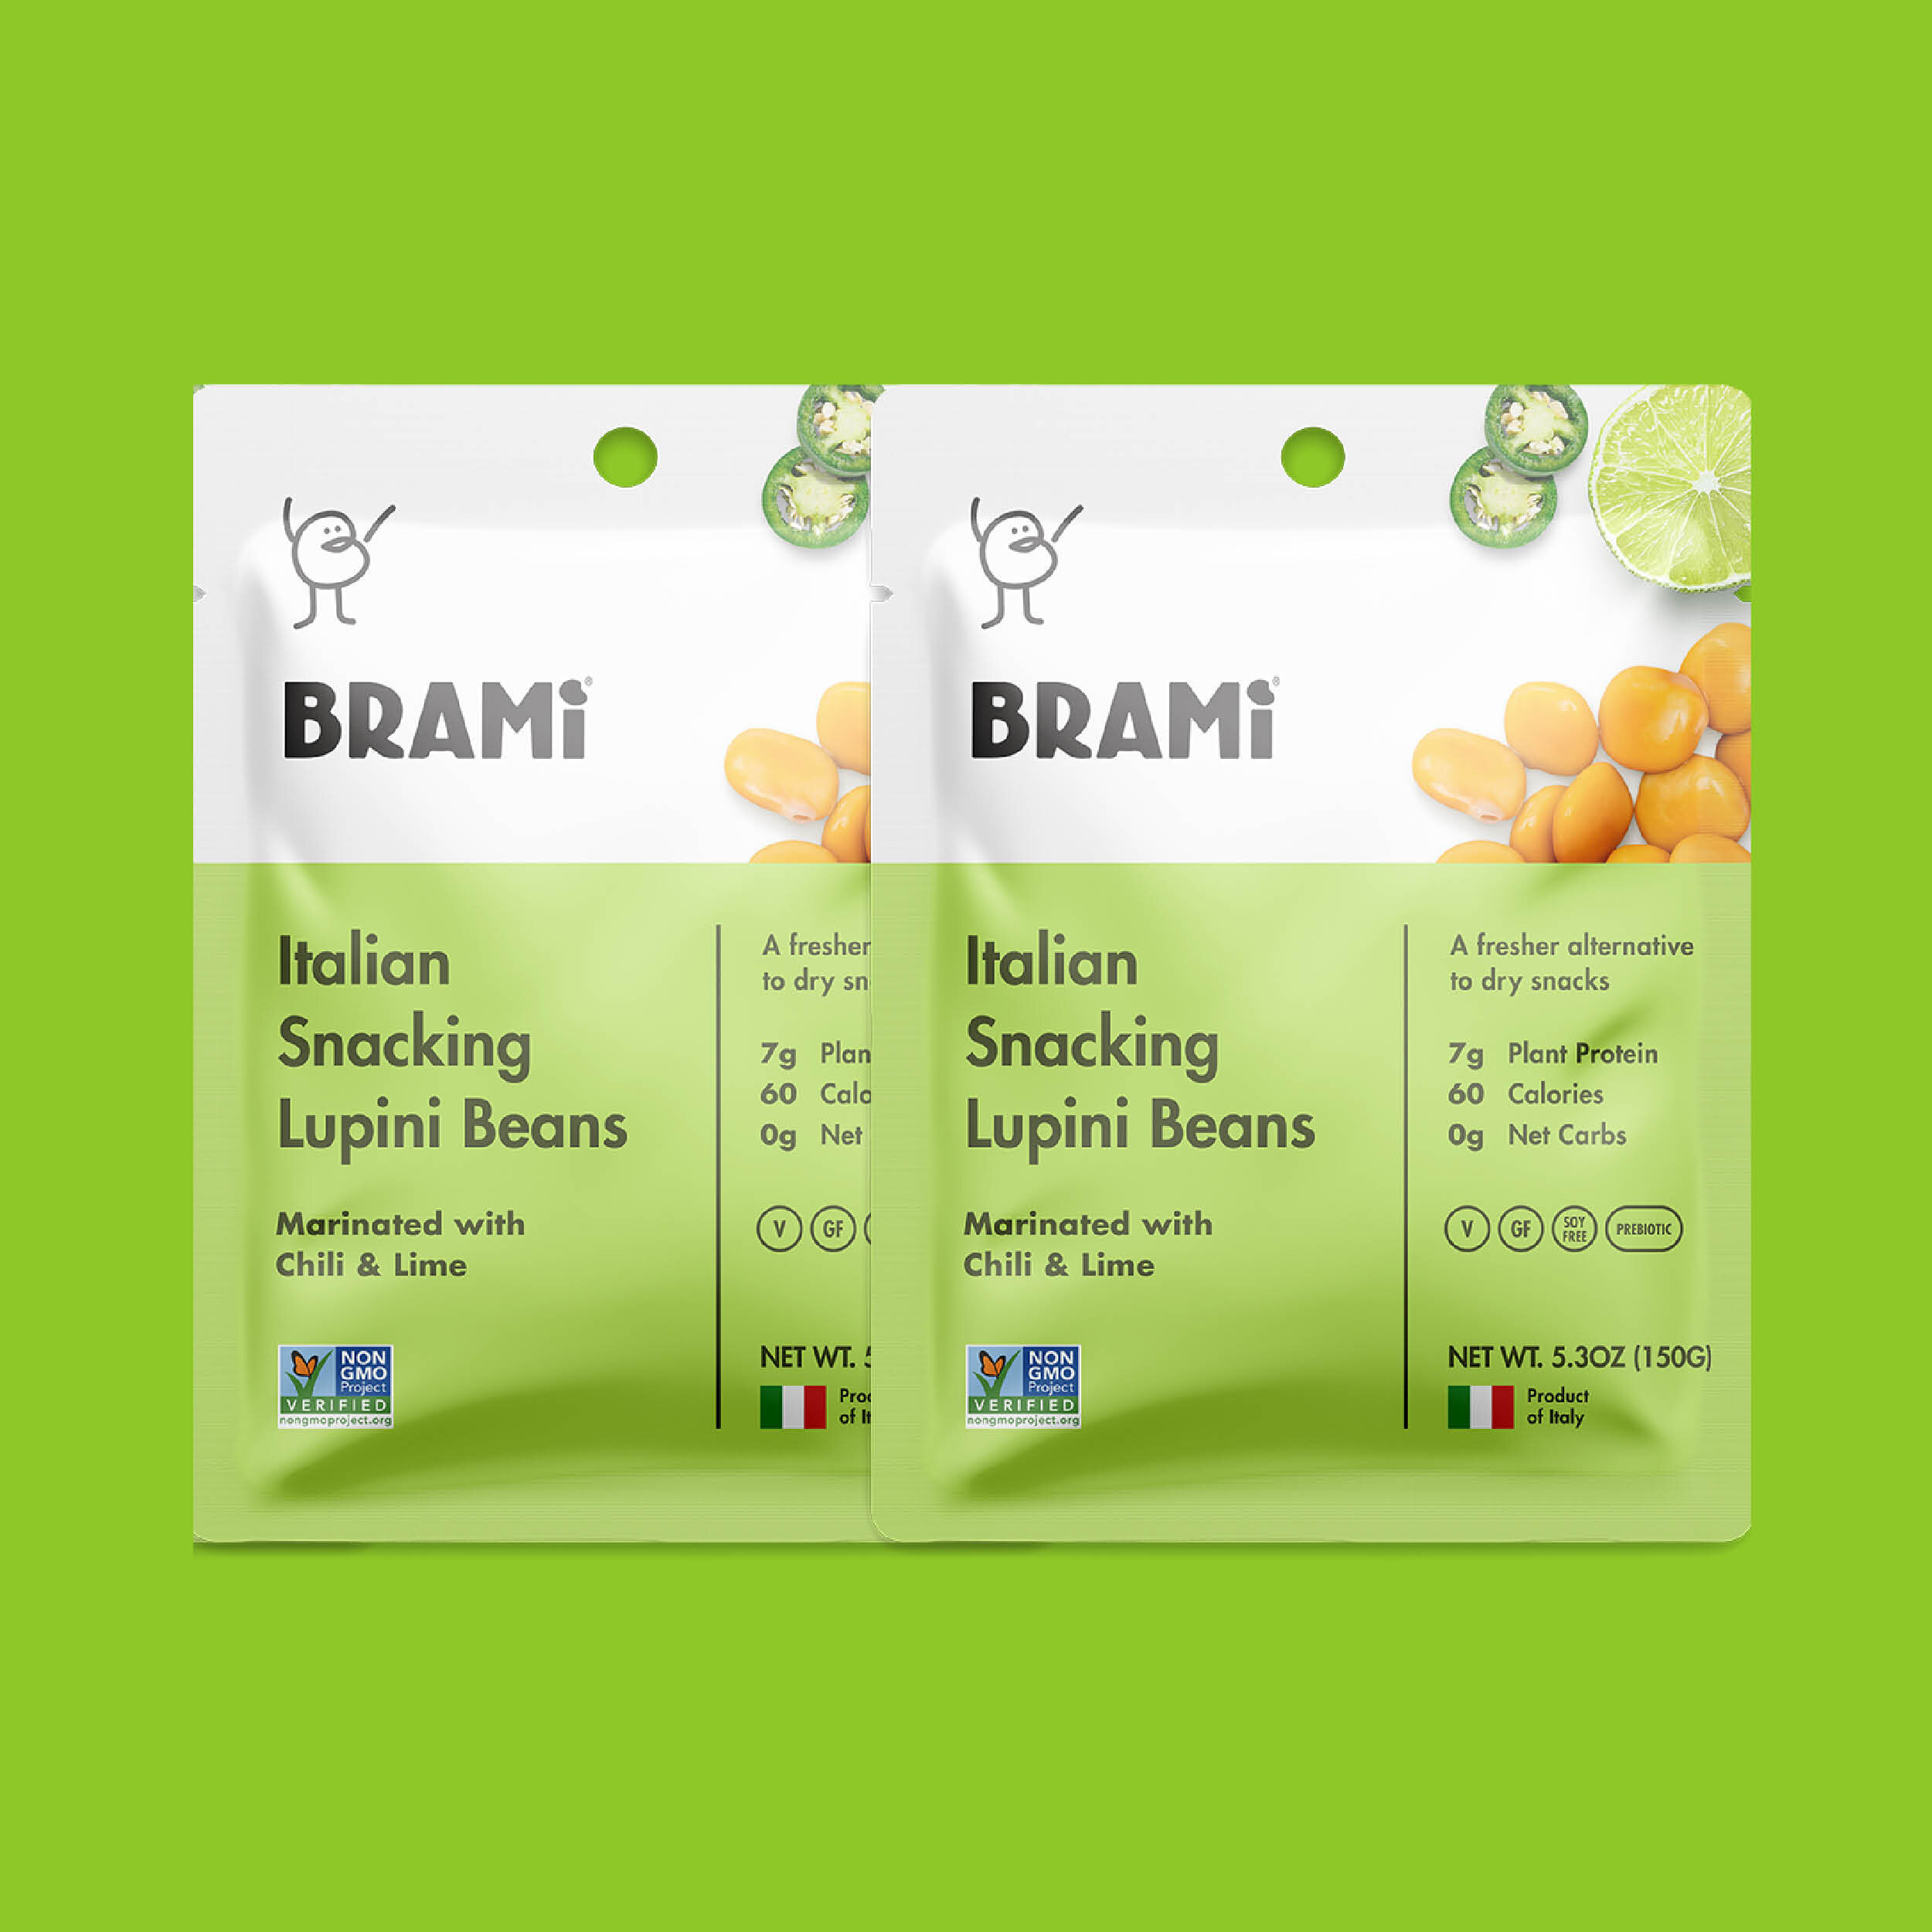 BRAMI Beans  are sprouted, marinated in savory seasonings, and packed fresh out of the barrel. Naturally high in plant protein, fiber and minerals and low in calories, fat, carbs and sugar, it is the perfect go-to snack. They have 50% more protein than eggs, 60% fewer carbs than chickpeas, 100% more fiber than edamame and 80% fewer calories than almonds.